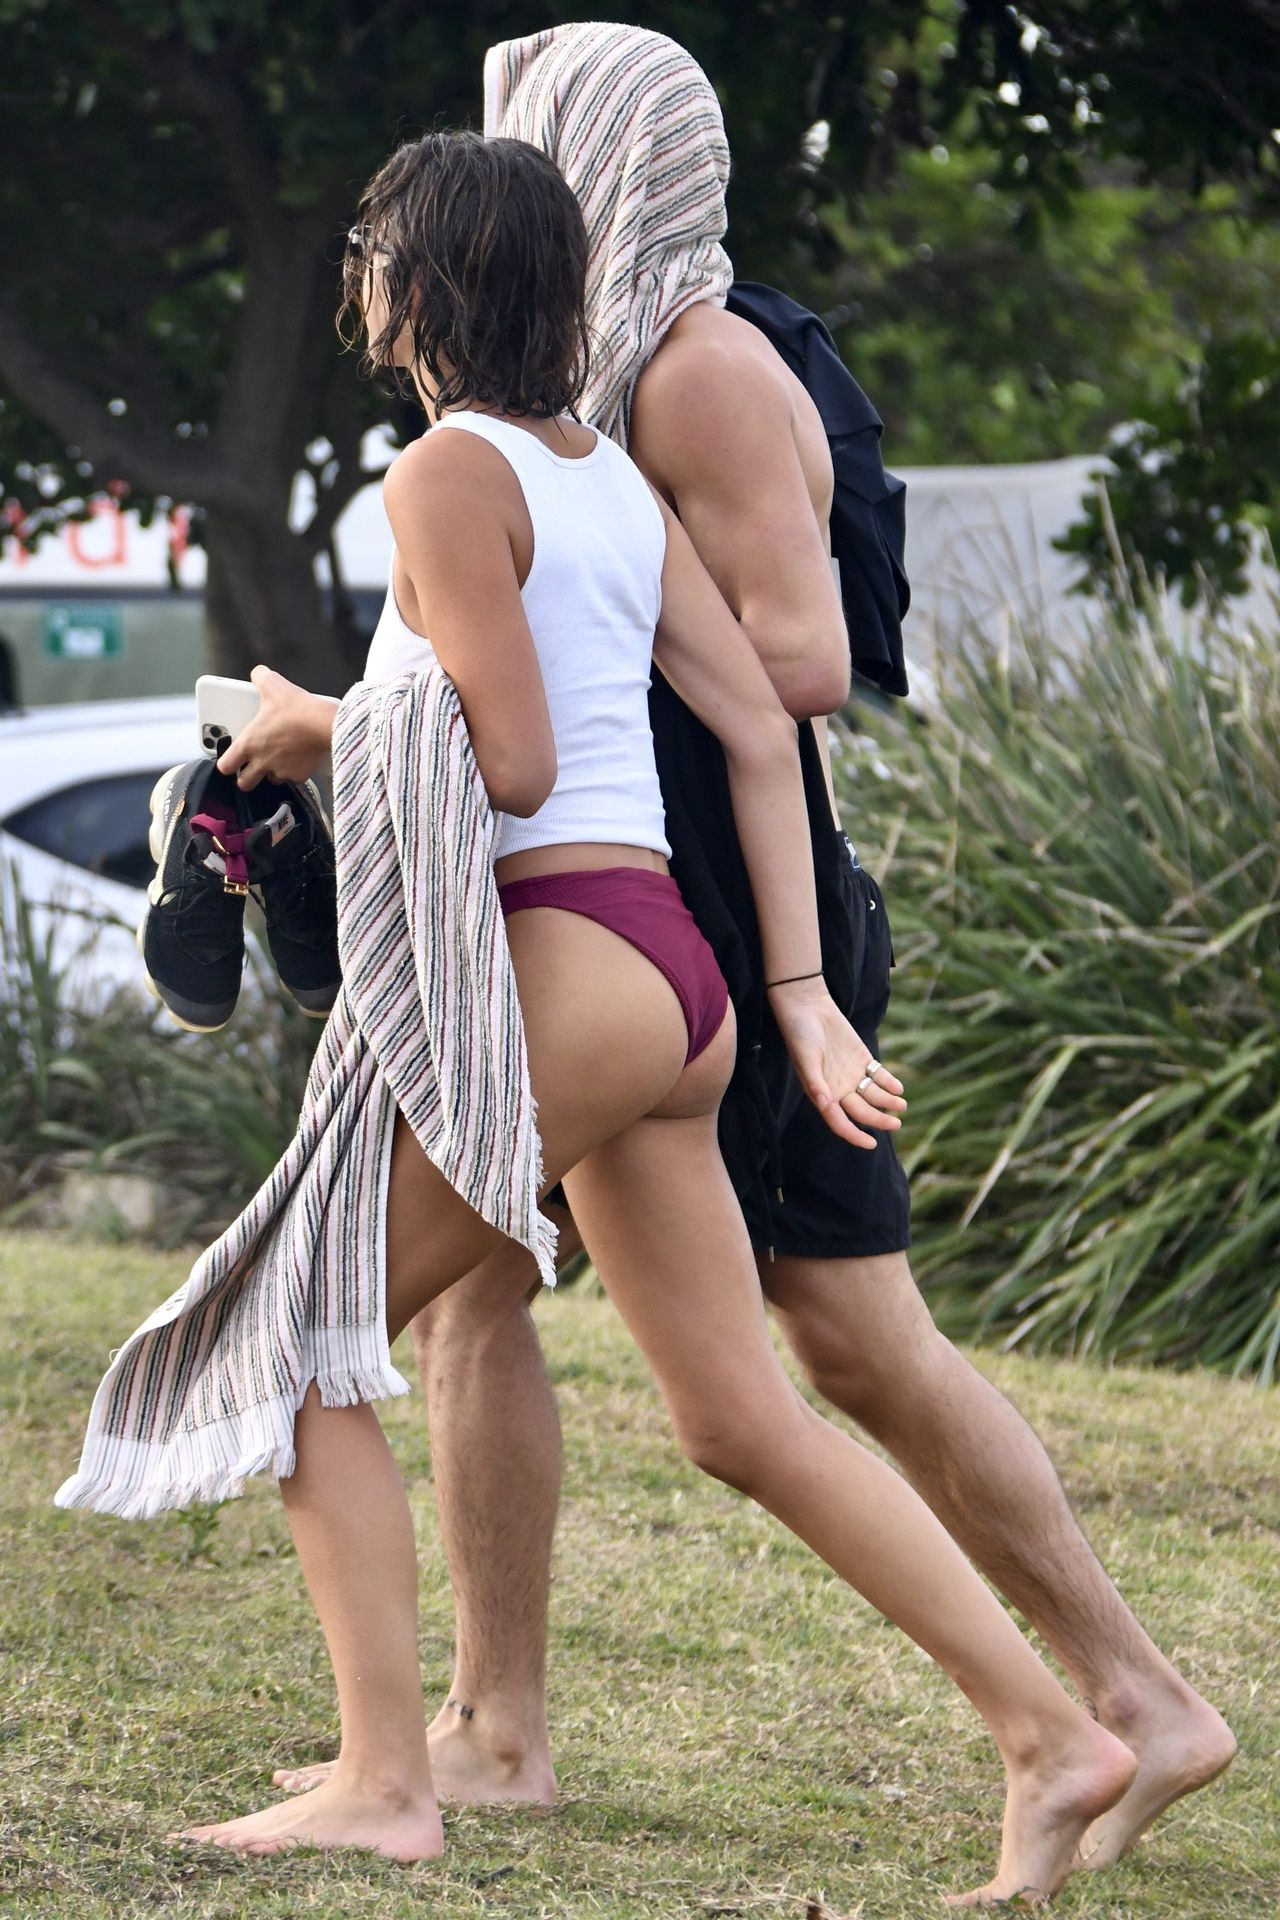 Georgia Fowler Pokies, and Nathan Dalah Were Seen Walking Home